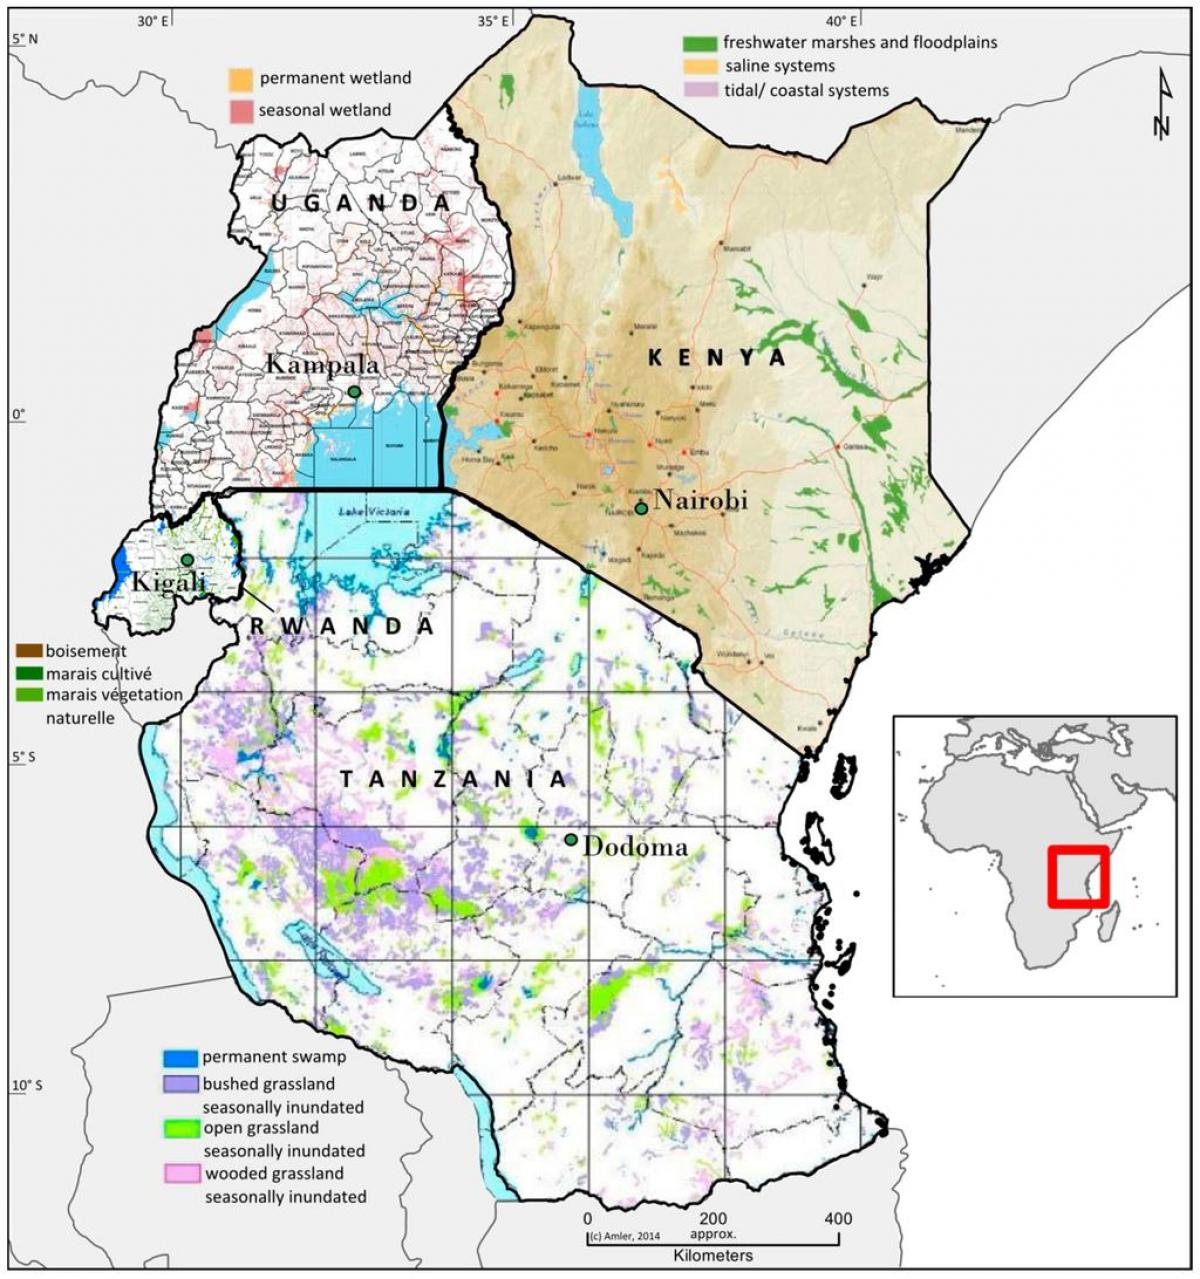 Map showing historical sites in tanzania - Map of tanzania ... on show the map of spain, show the map of canada, show the map of korea, show the map of north america, show the map of china, show the map of greece, show the map of switzerland, show the map of ecuador, show the map of brazil, show the map of kenya, show the map of indonesia, show the map of mexico, show the map of england, show the map of zambia, show the map of central asia, show the map of italy, show the map of botswana, show the map of california,